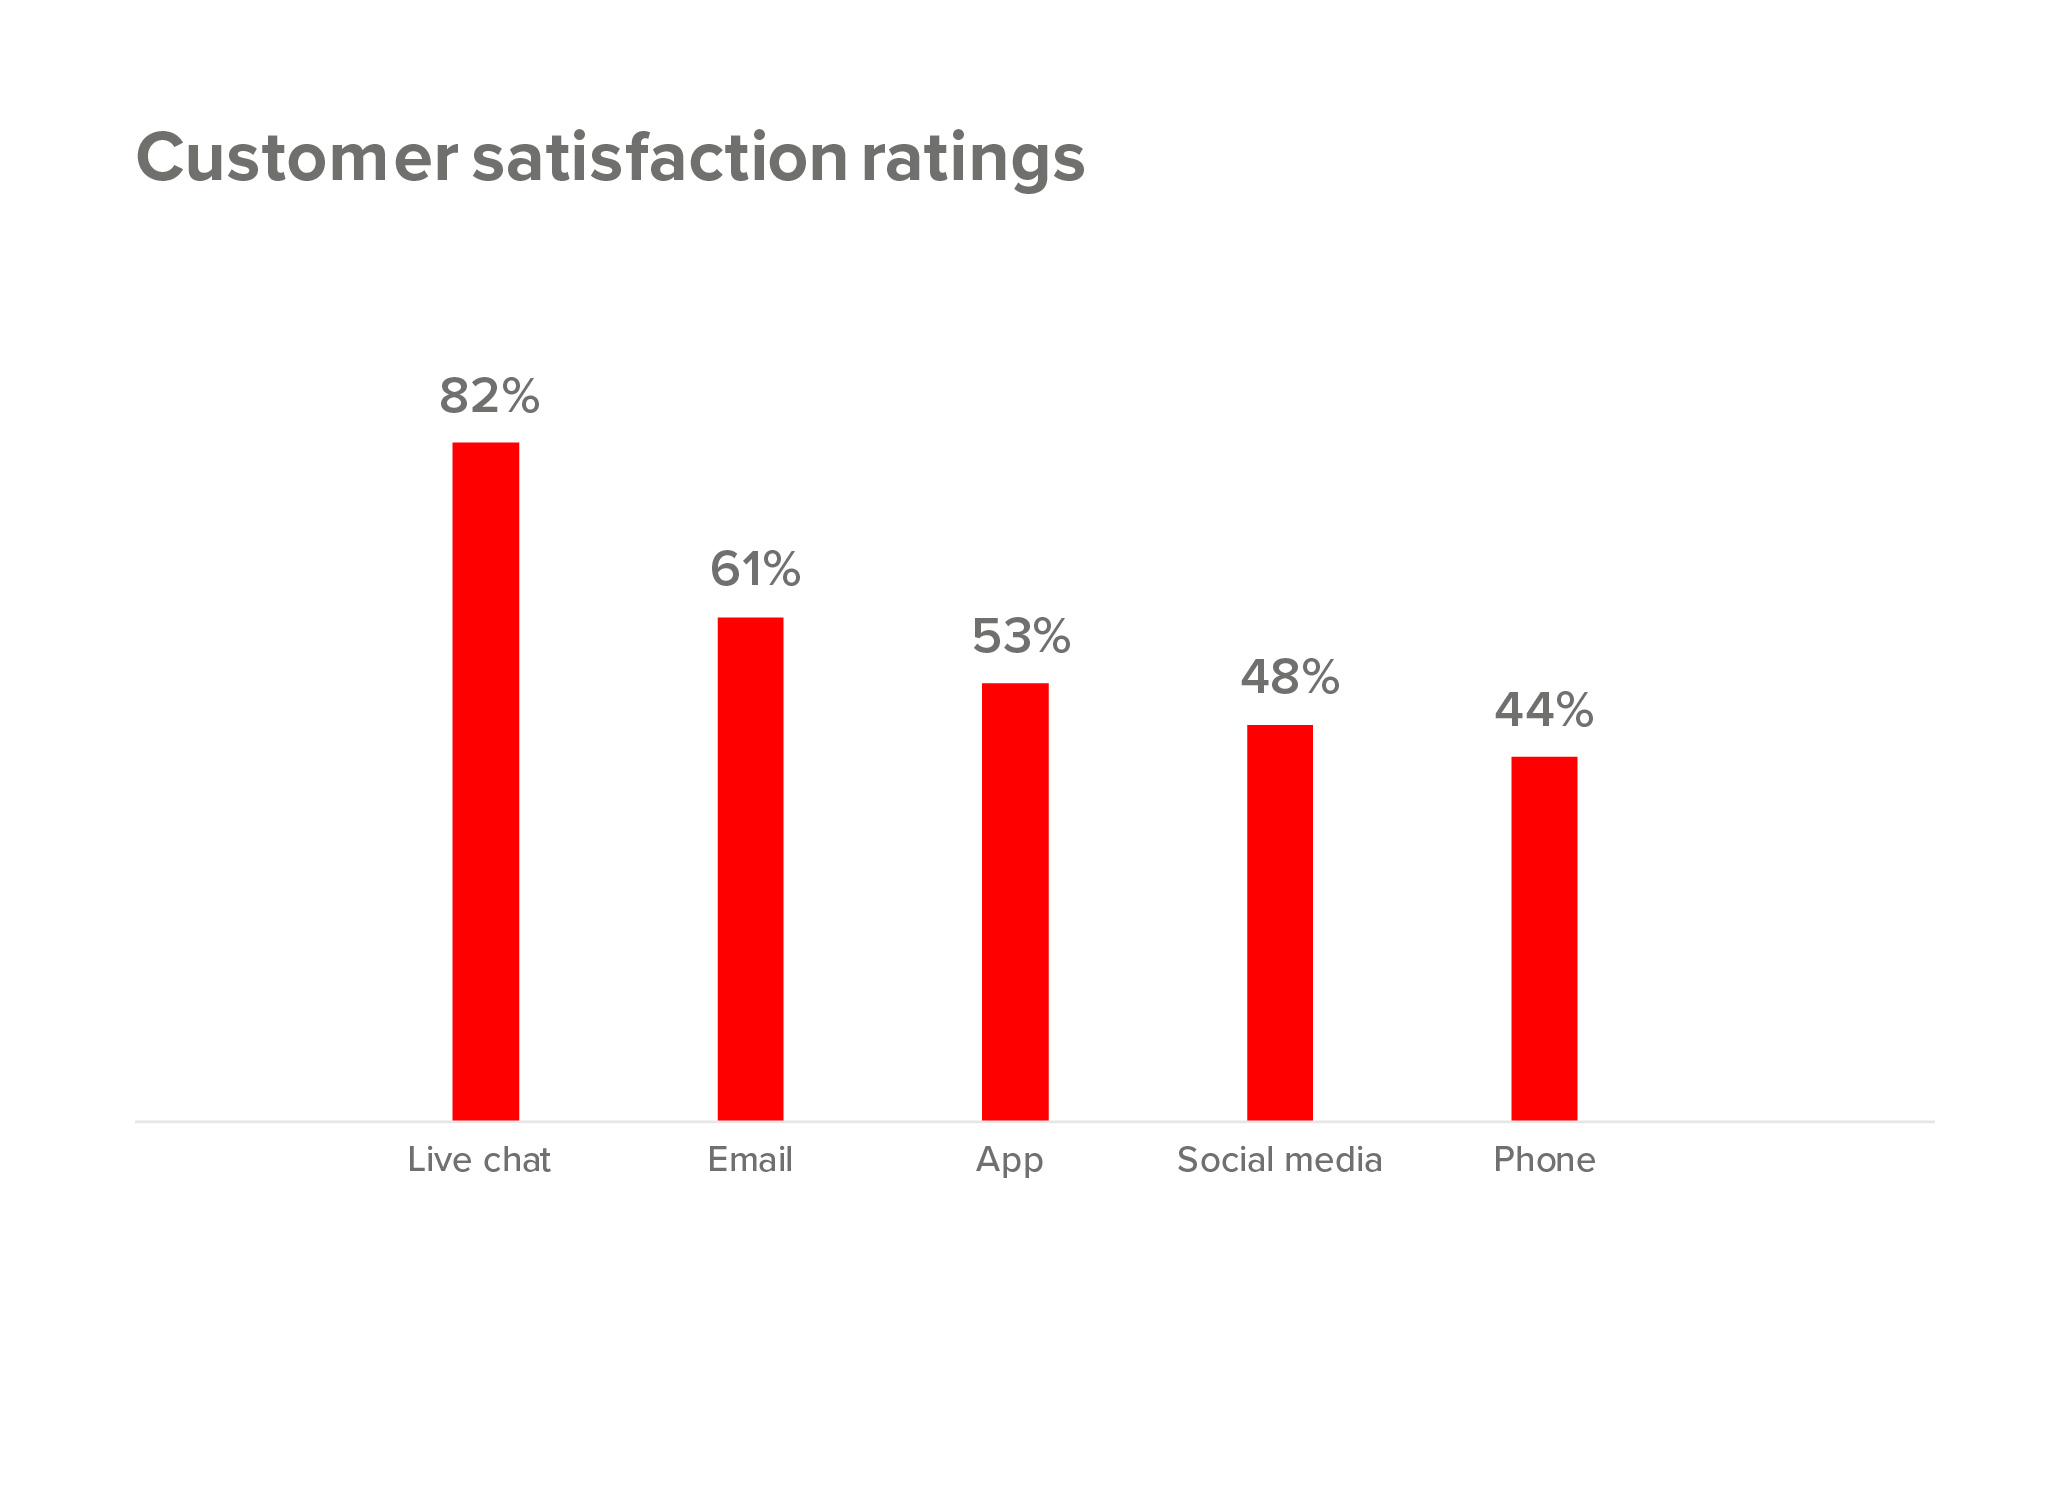 Customer satisfaction ratings, by channel